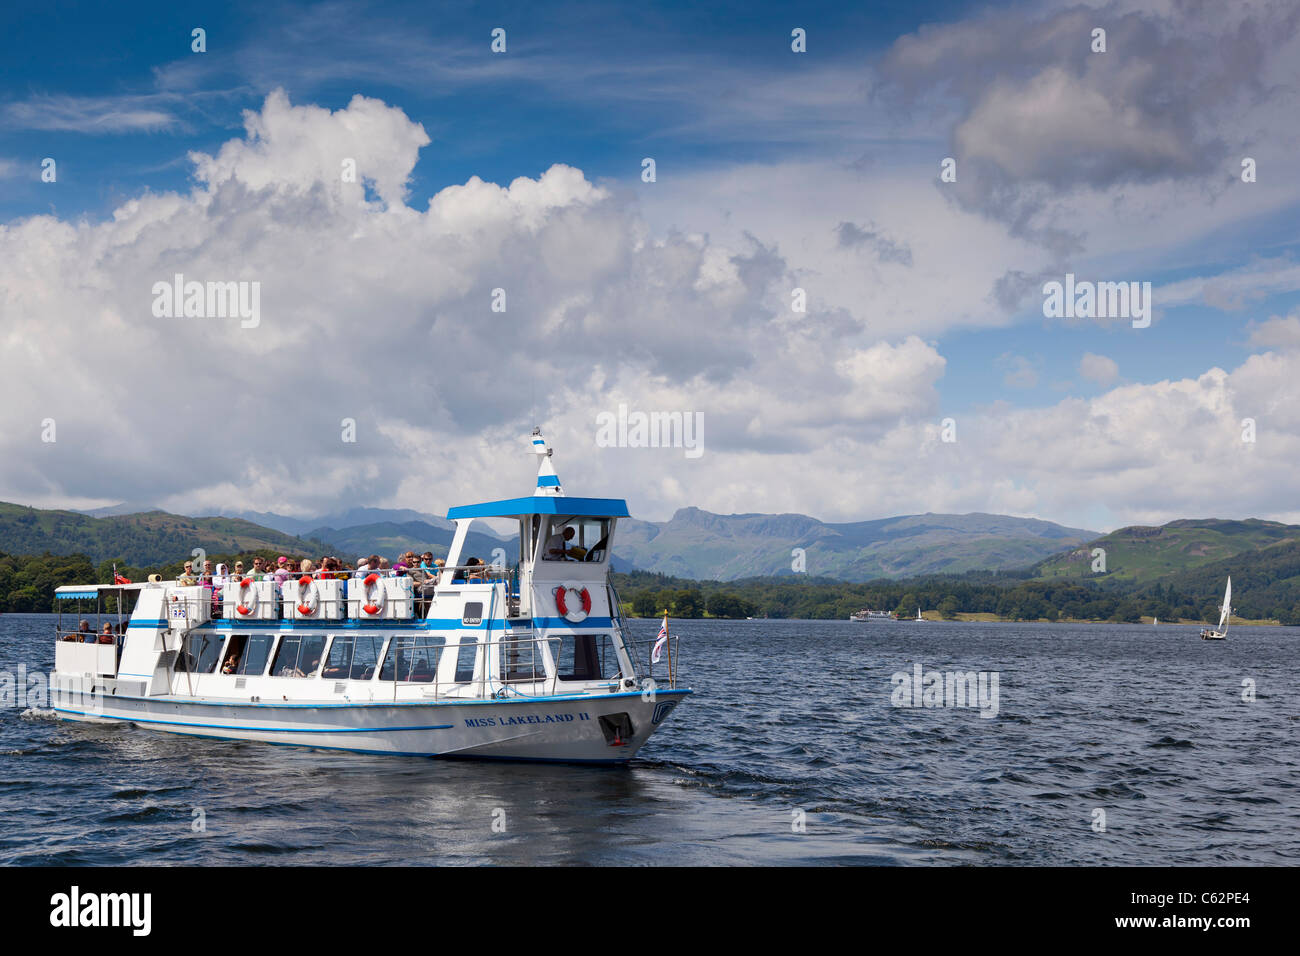 Lake Windermere launch Miss Lakeland 2 leaves the pier at Brockhole Park the Lake District visitor centre. - Stock Image